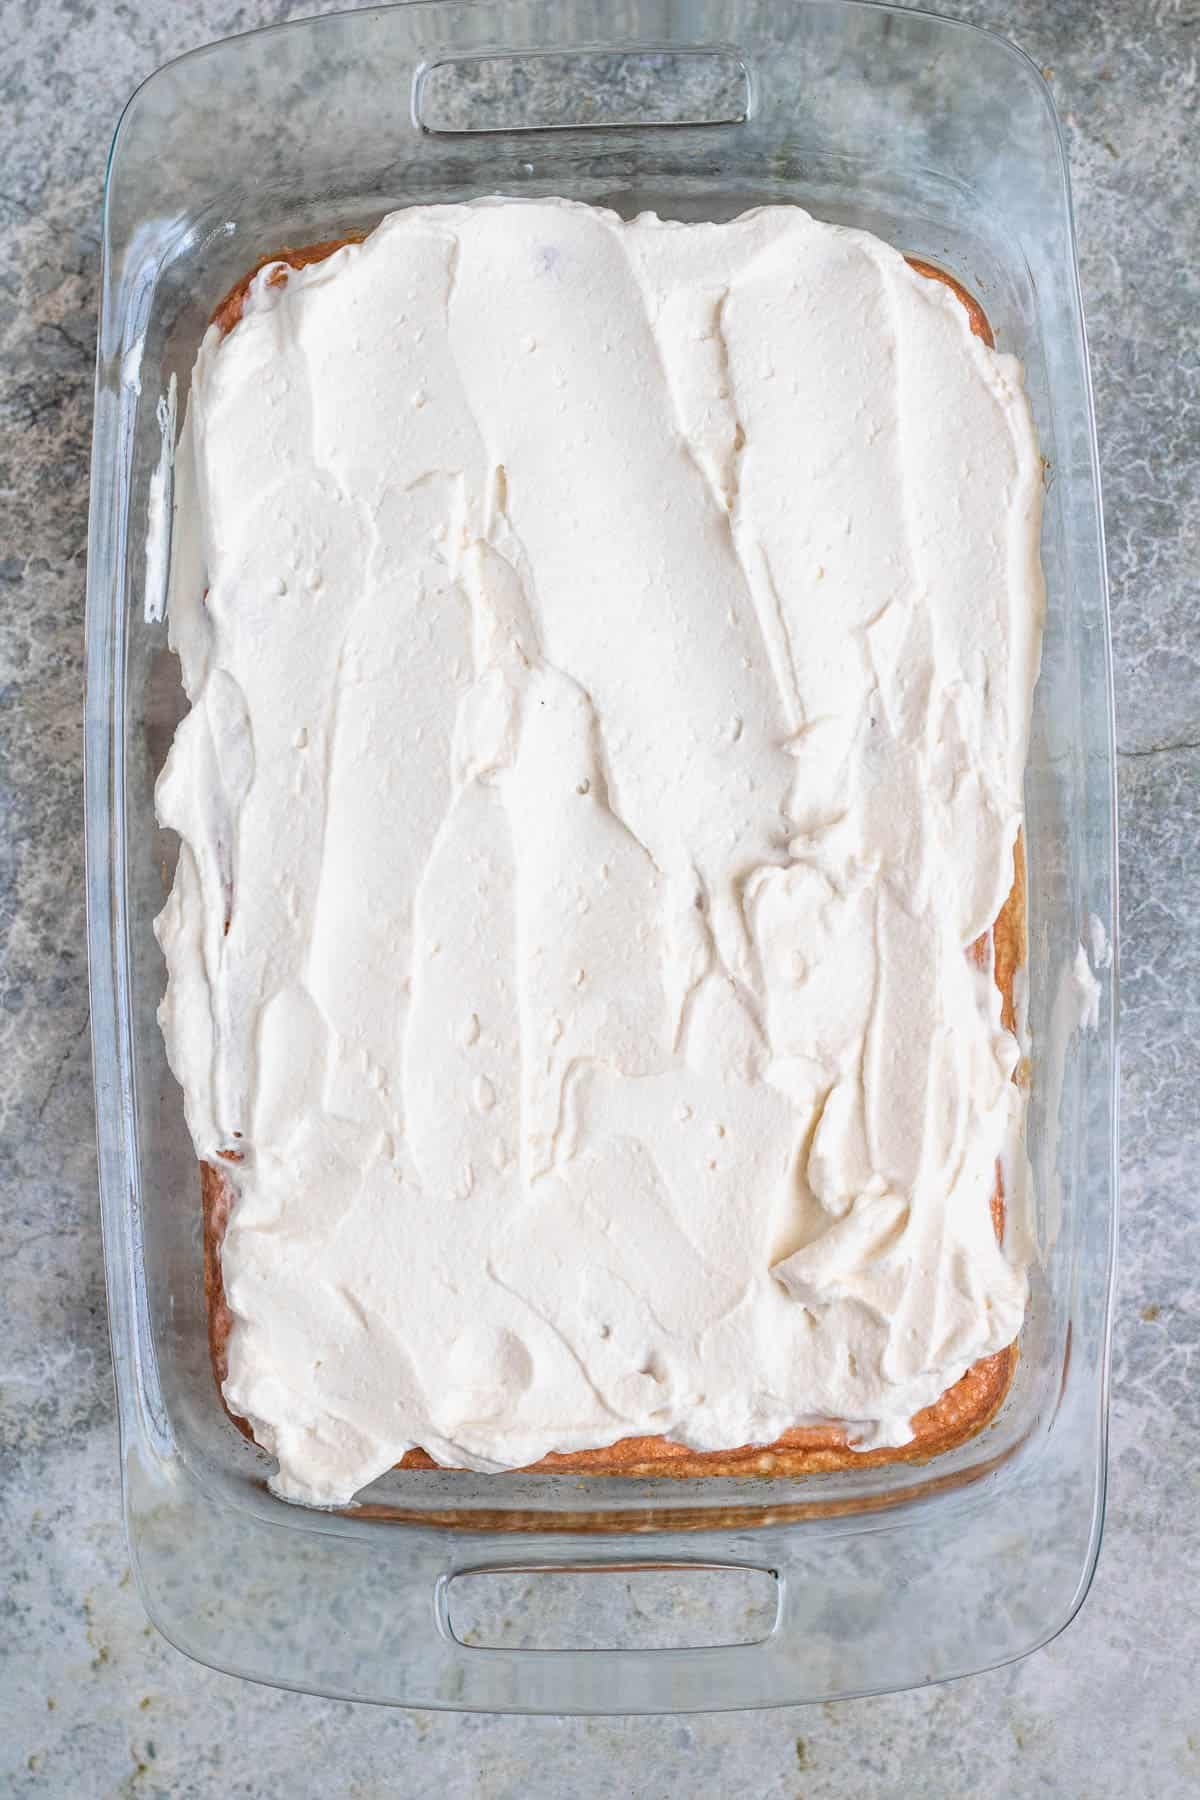 Whipped cream spread on the easy tres leches cake